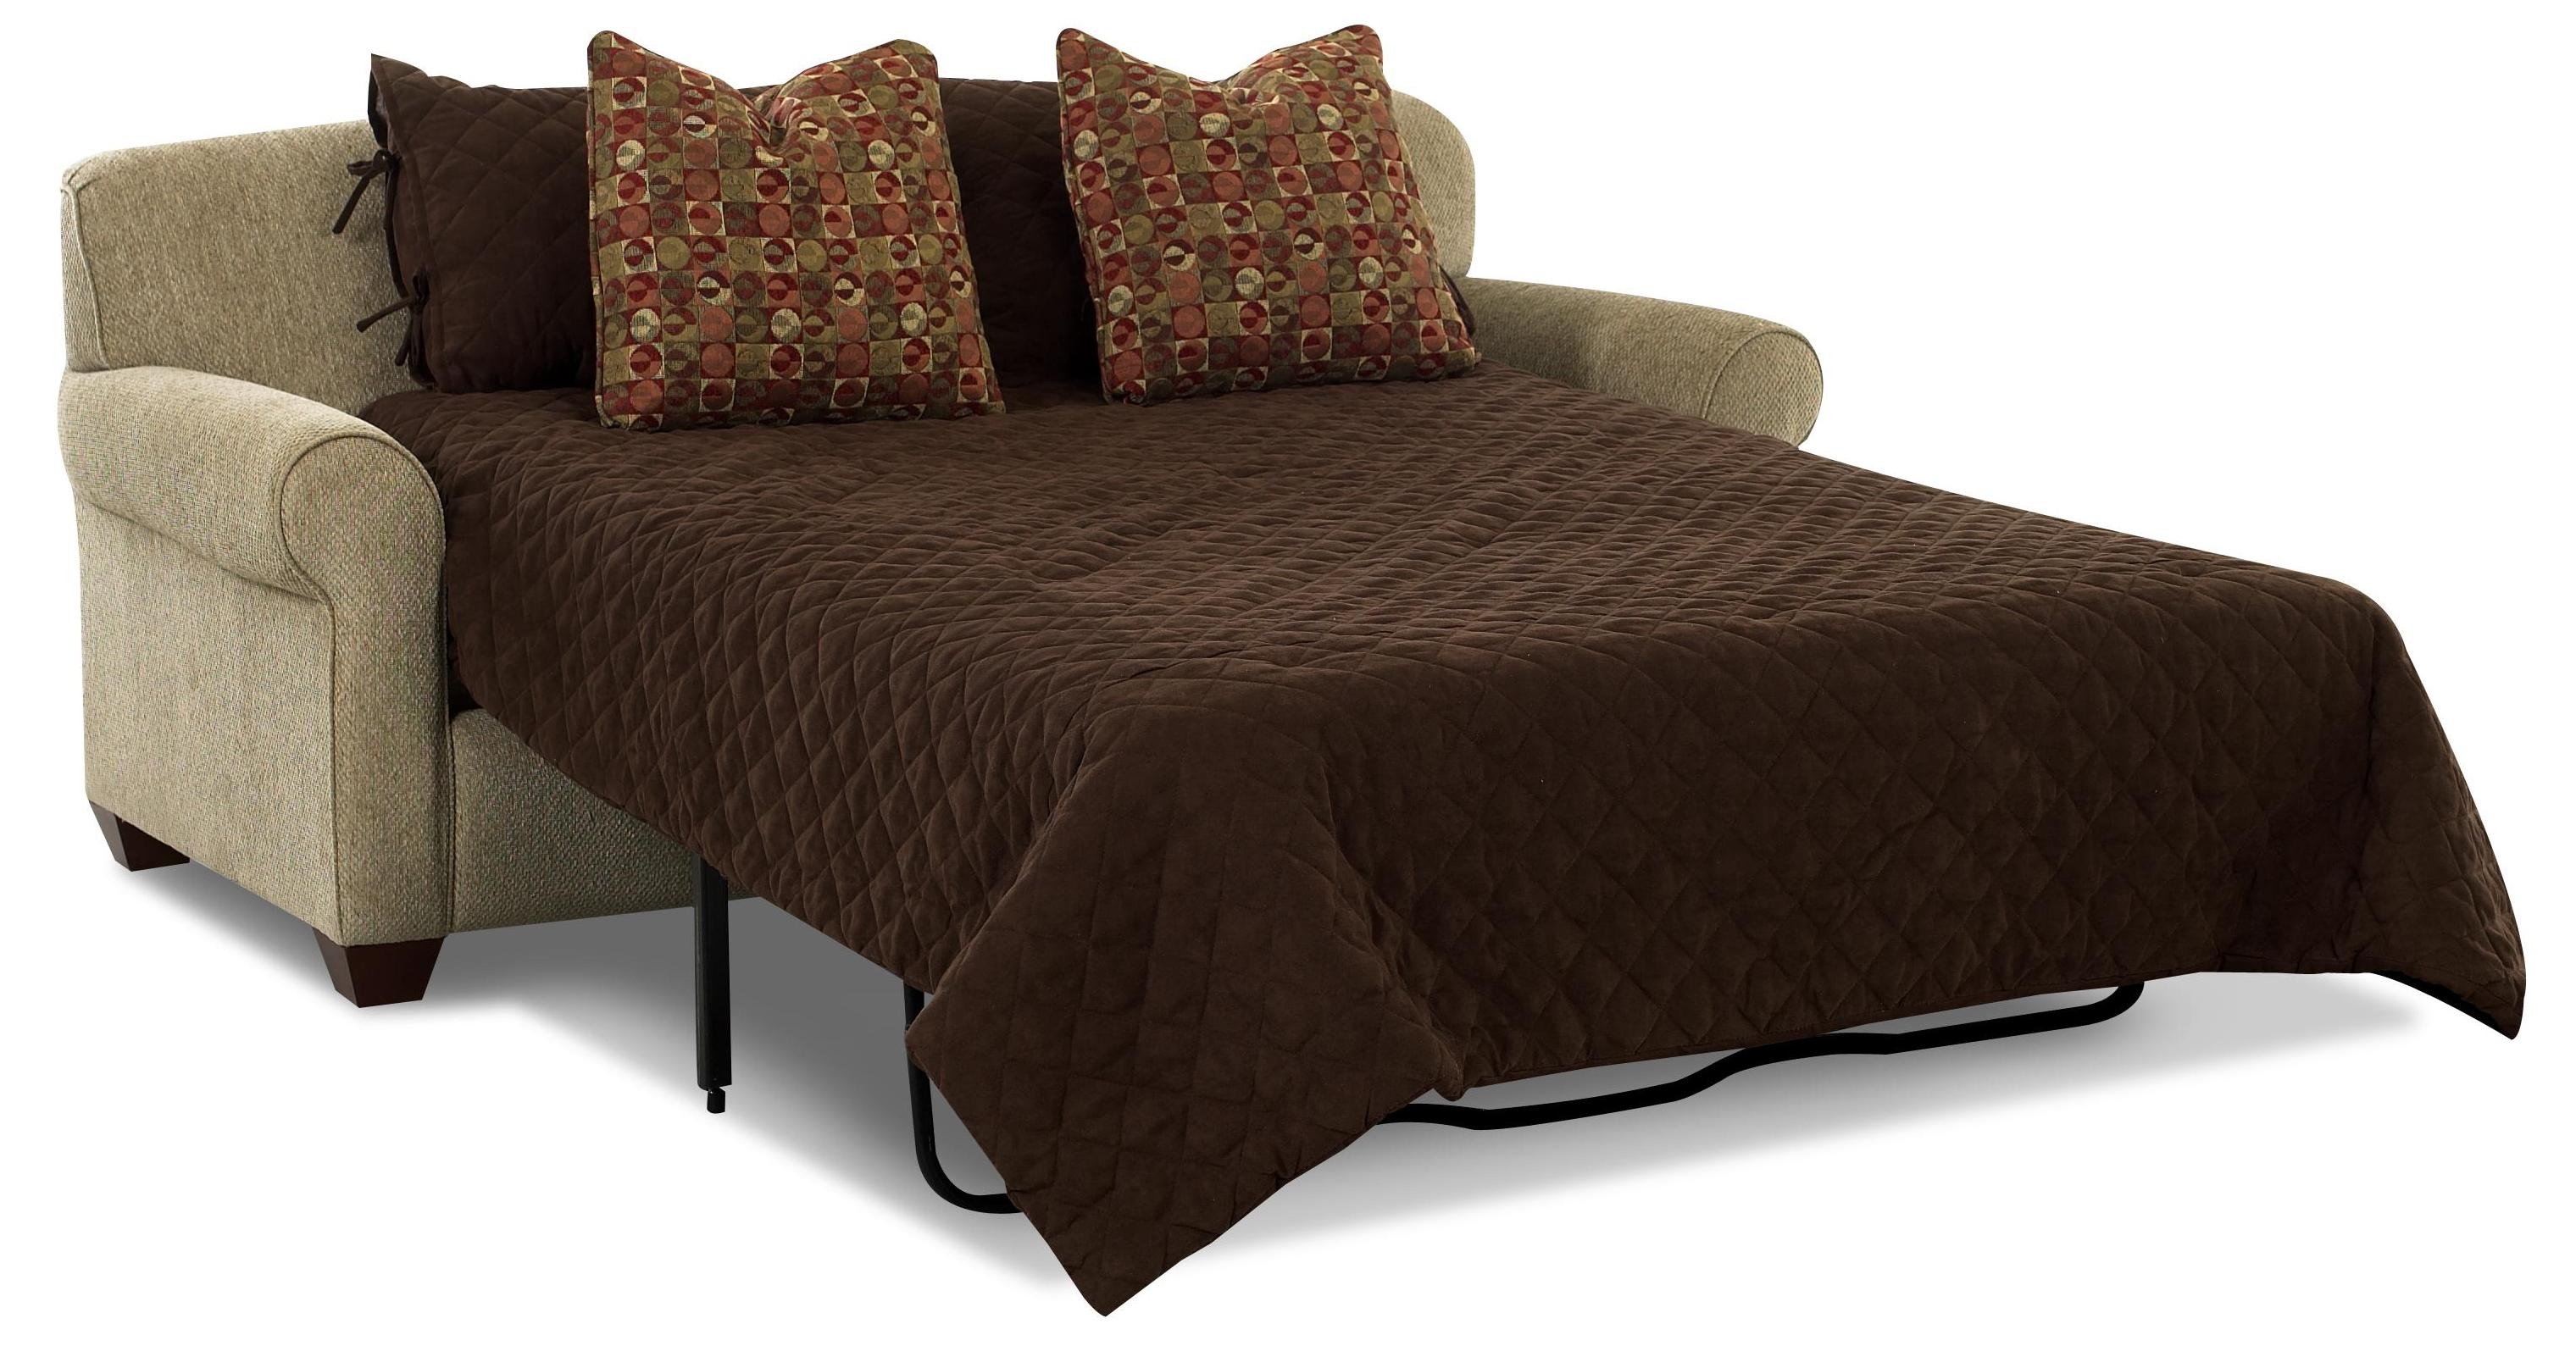 Klaussner Mayhew Dreamquest Regular Sleeper - Item Number: 97900DRSL